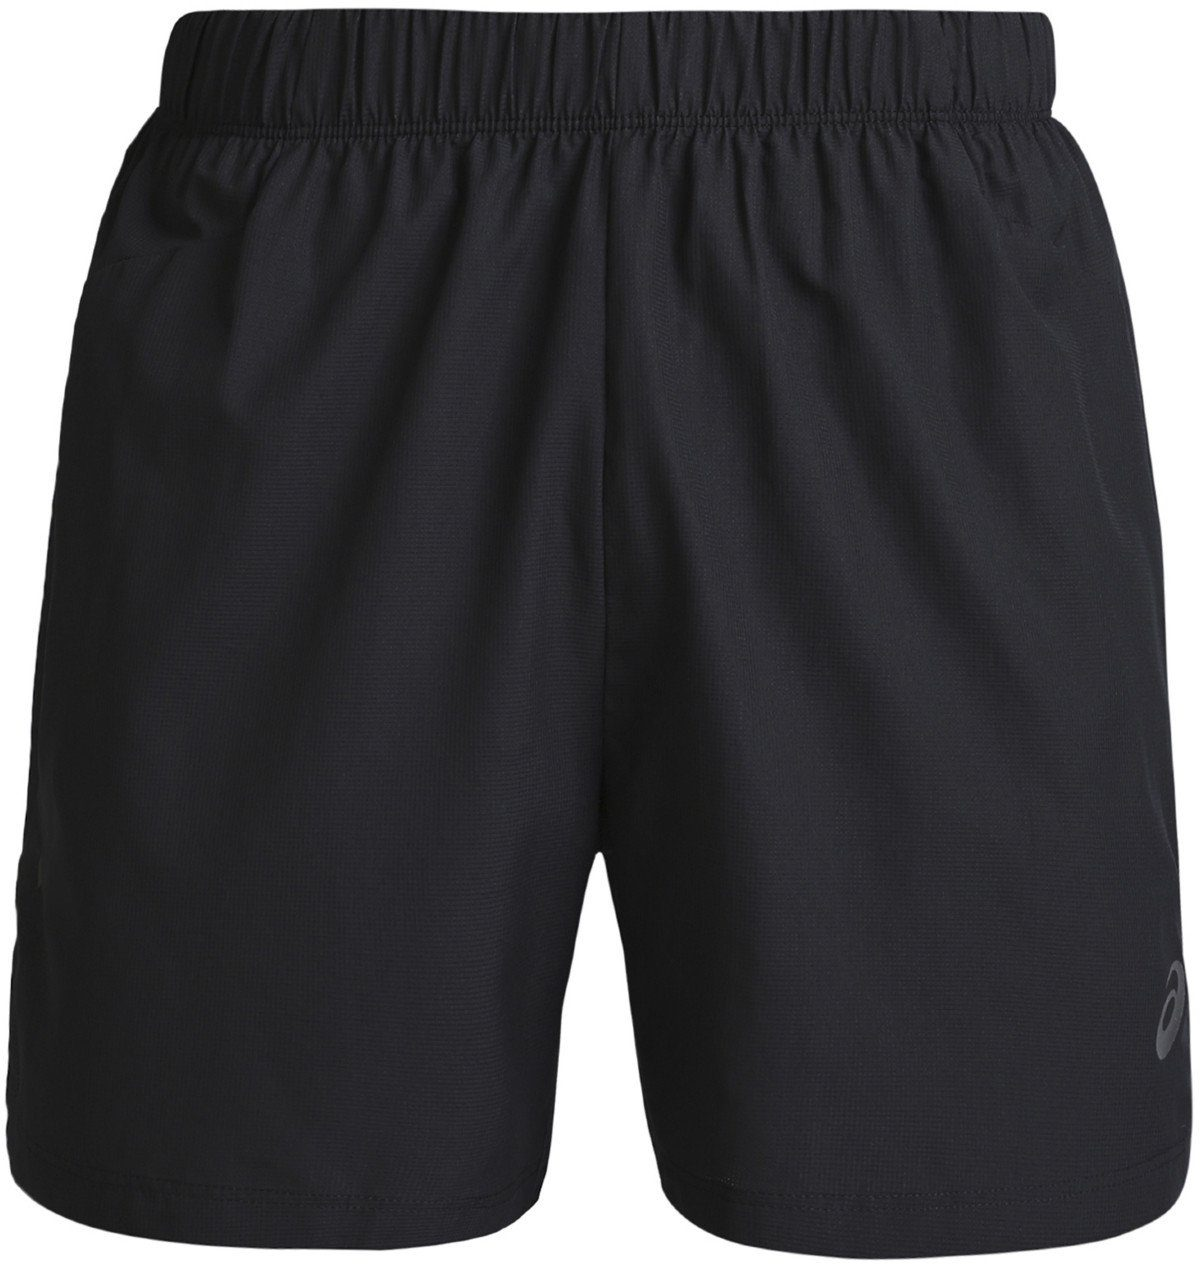 "Asics Hose »Cool 2-N-1 5"" Shorts Men«"